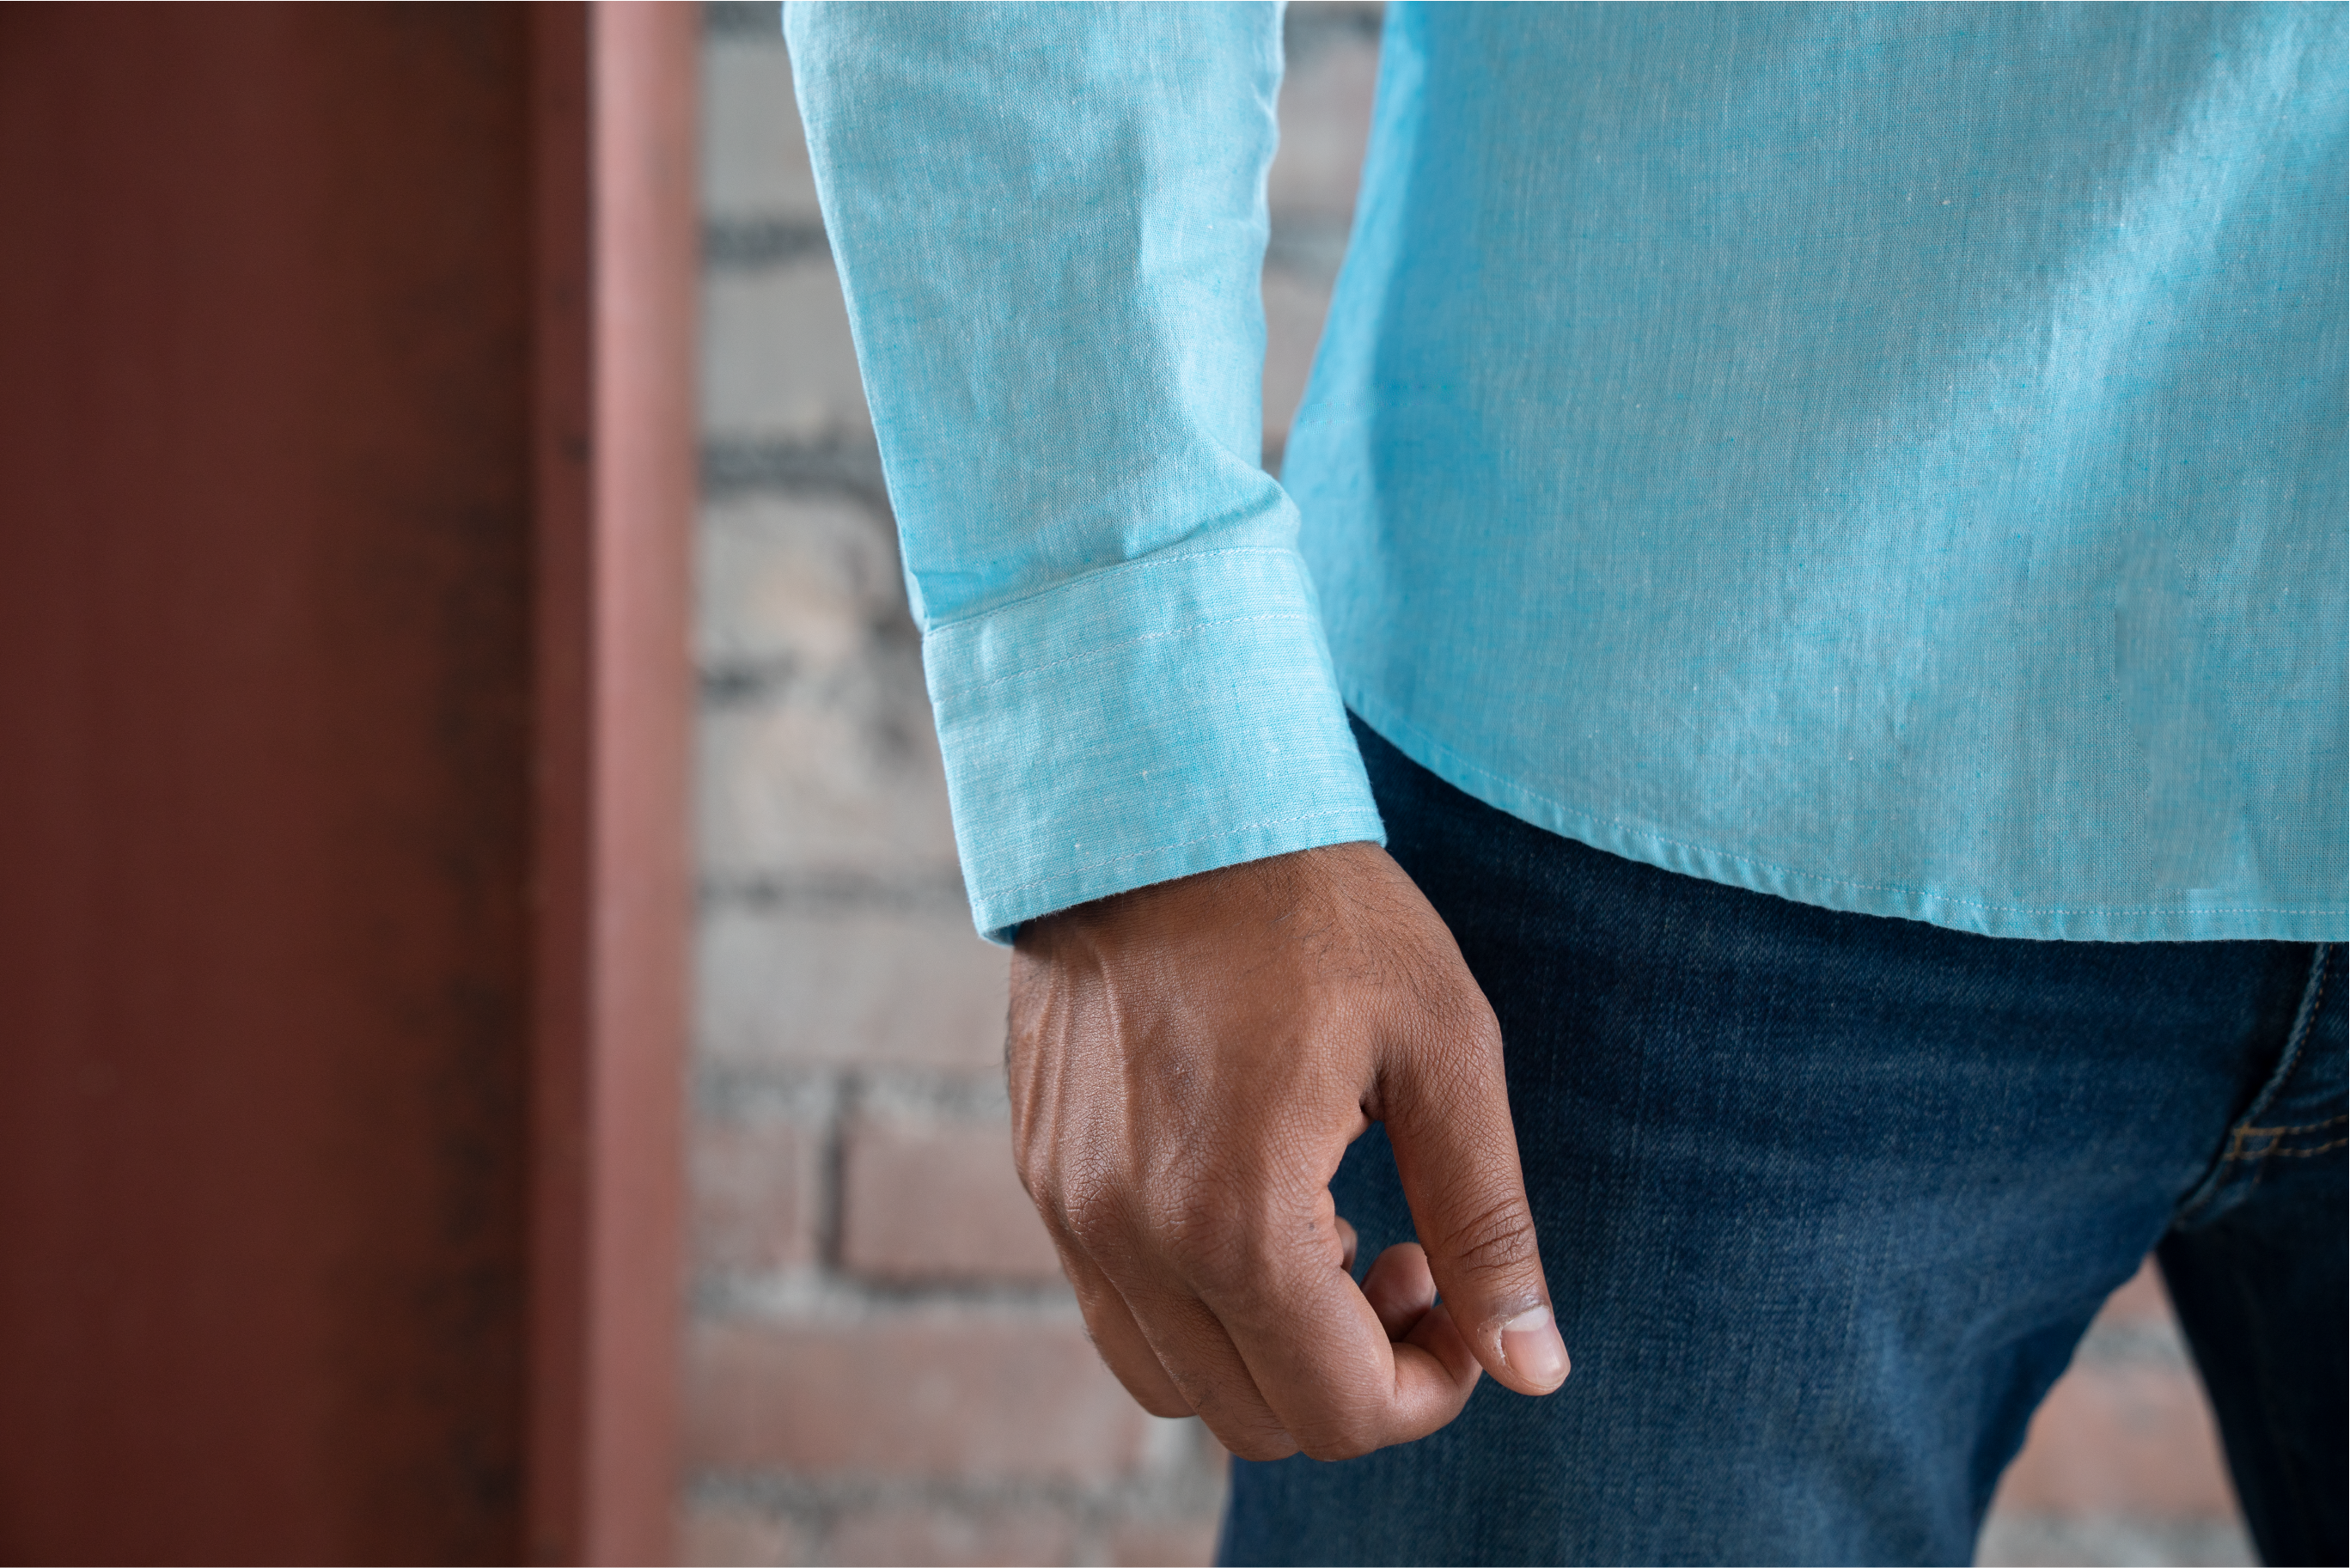 A close-up image of a young man's wrist to accentuate the Ash & Erie button-down shirt's correct sleeve length.